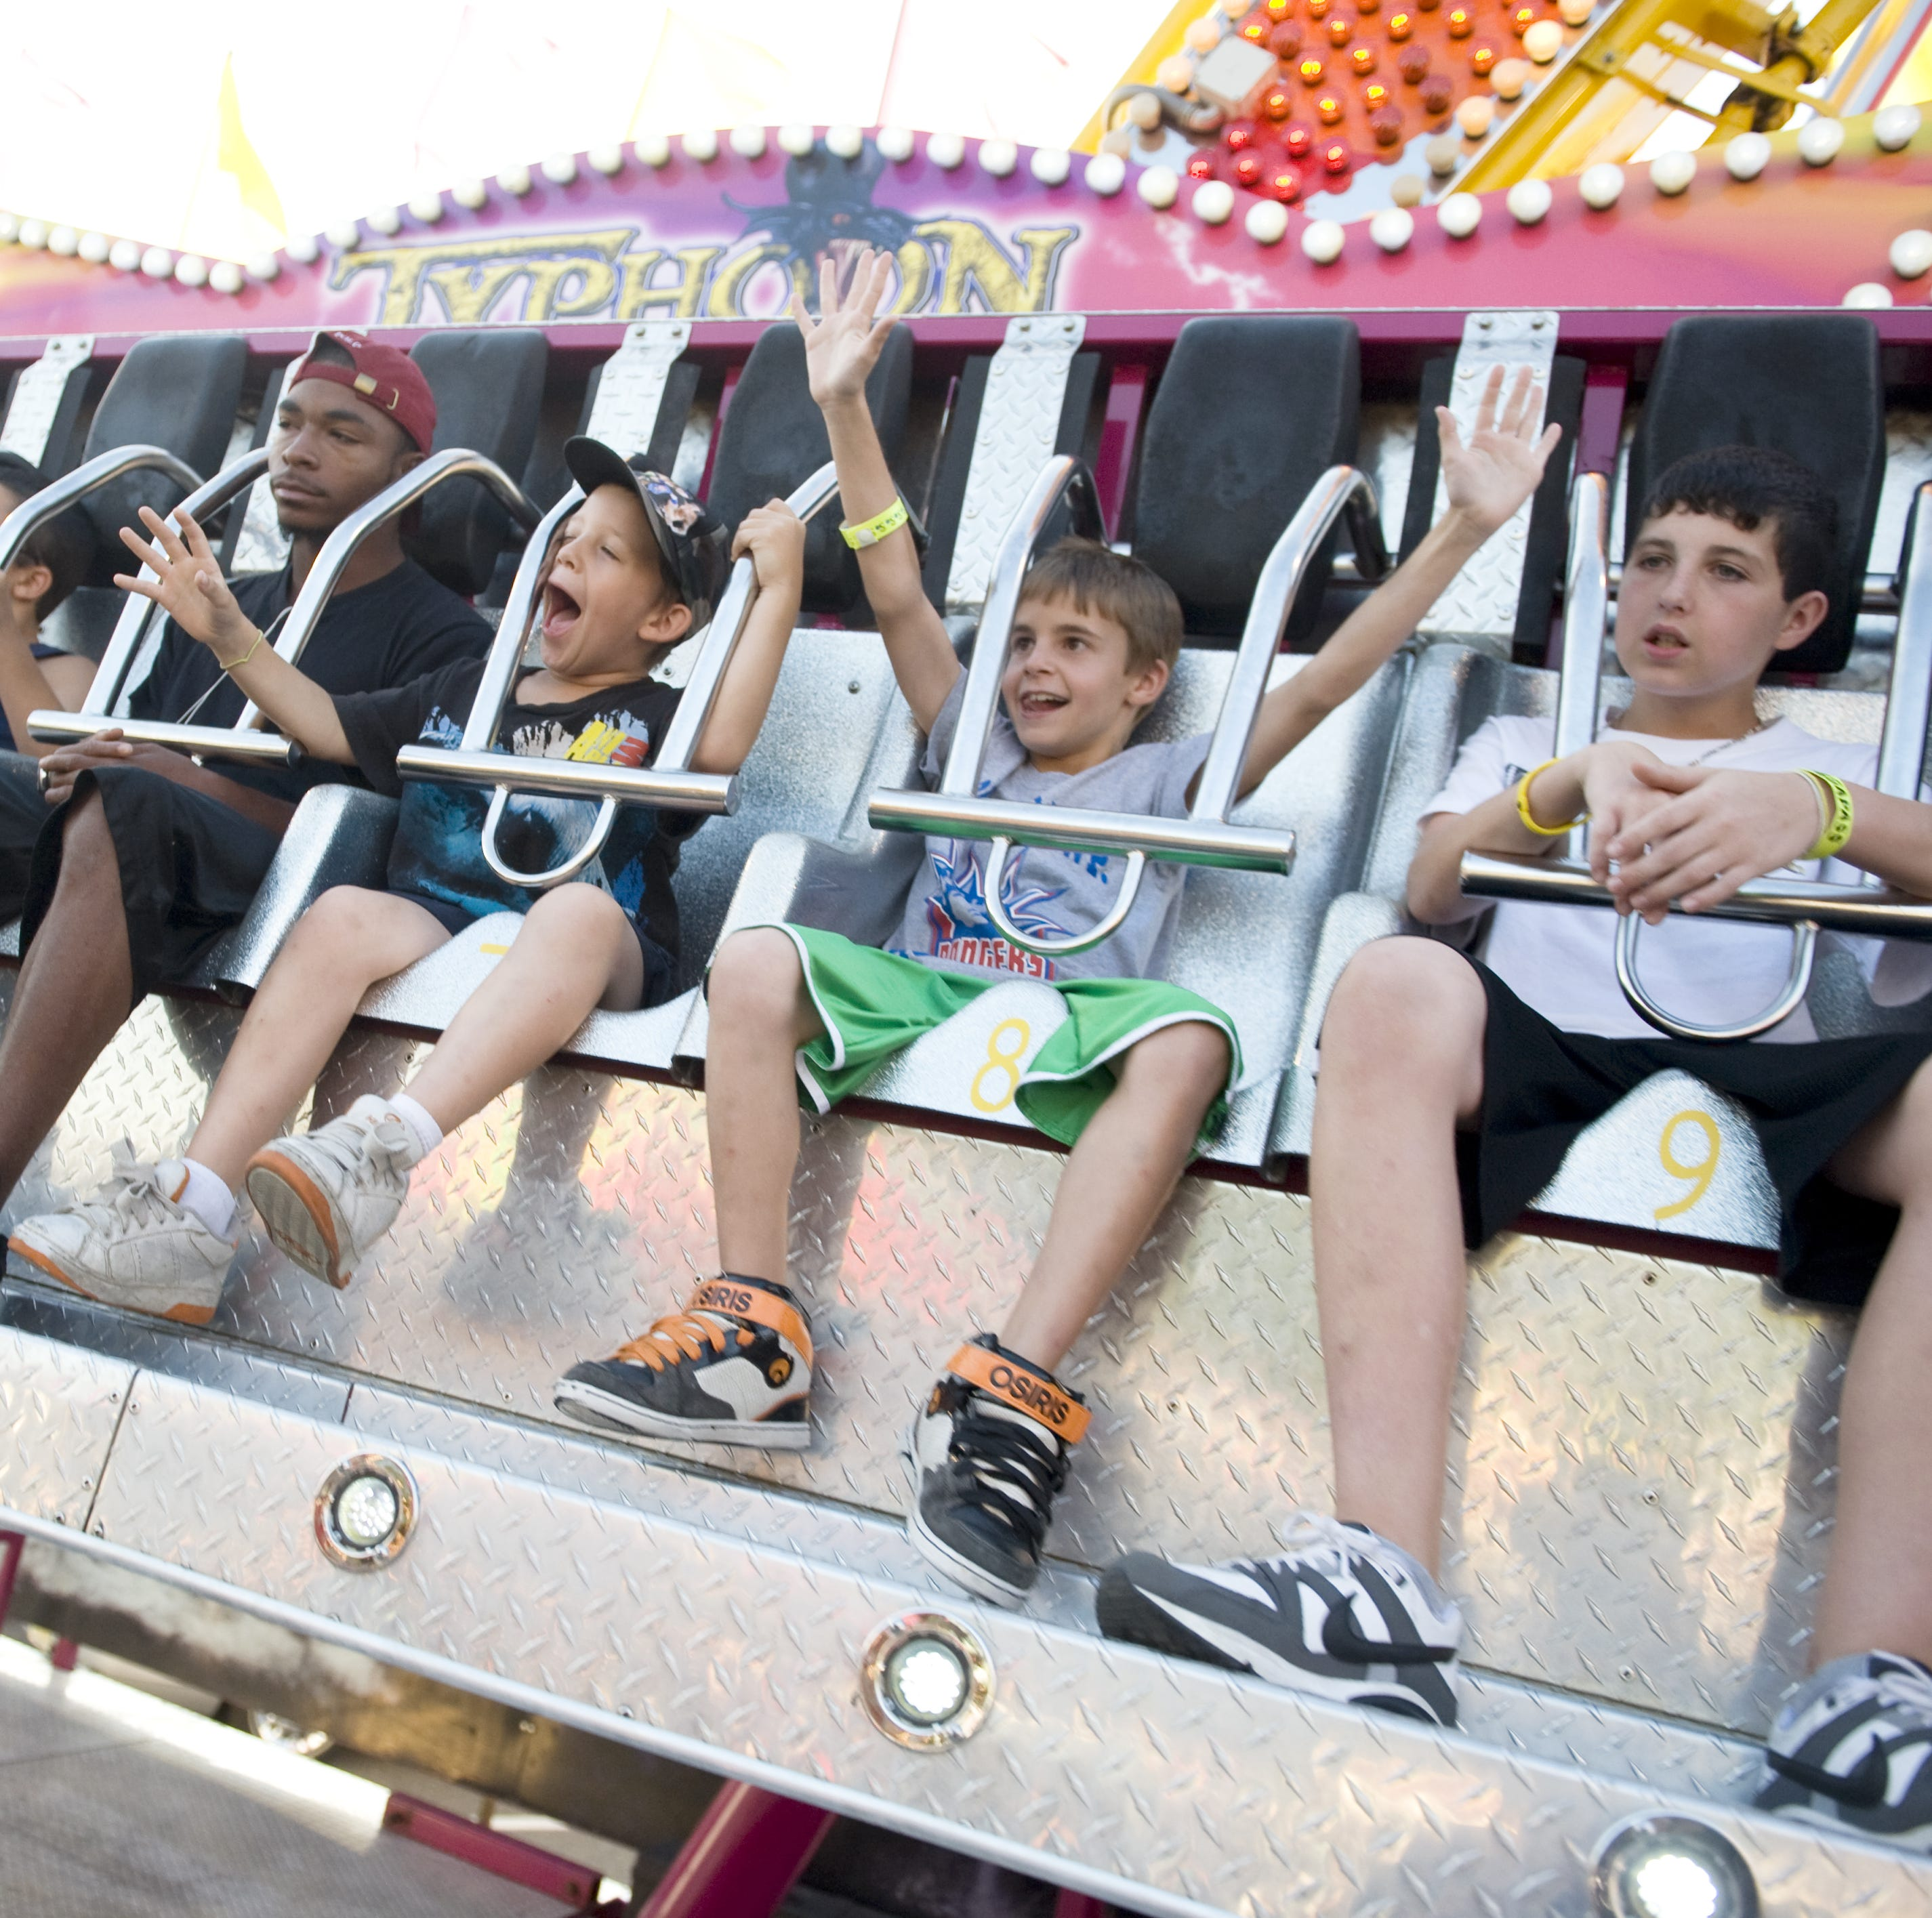 South Jersey Carnival Guide 2019: Family fun coming soon to a town near you